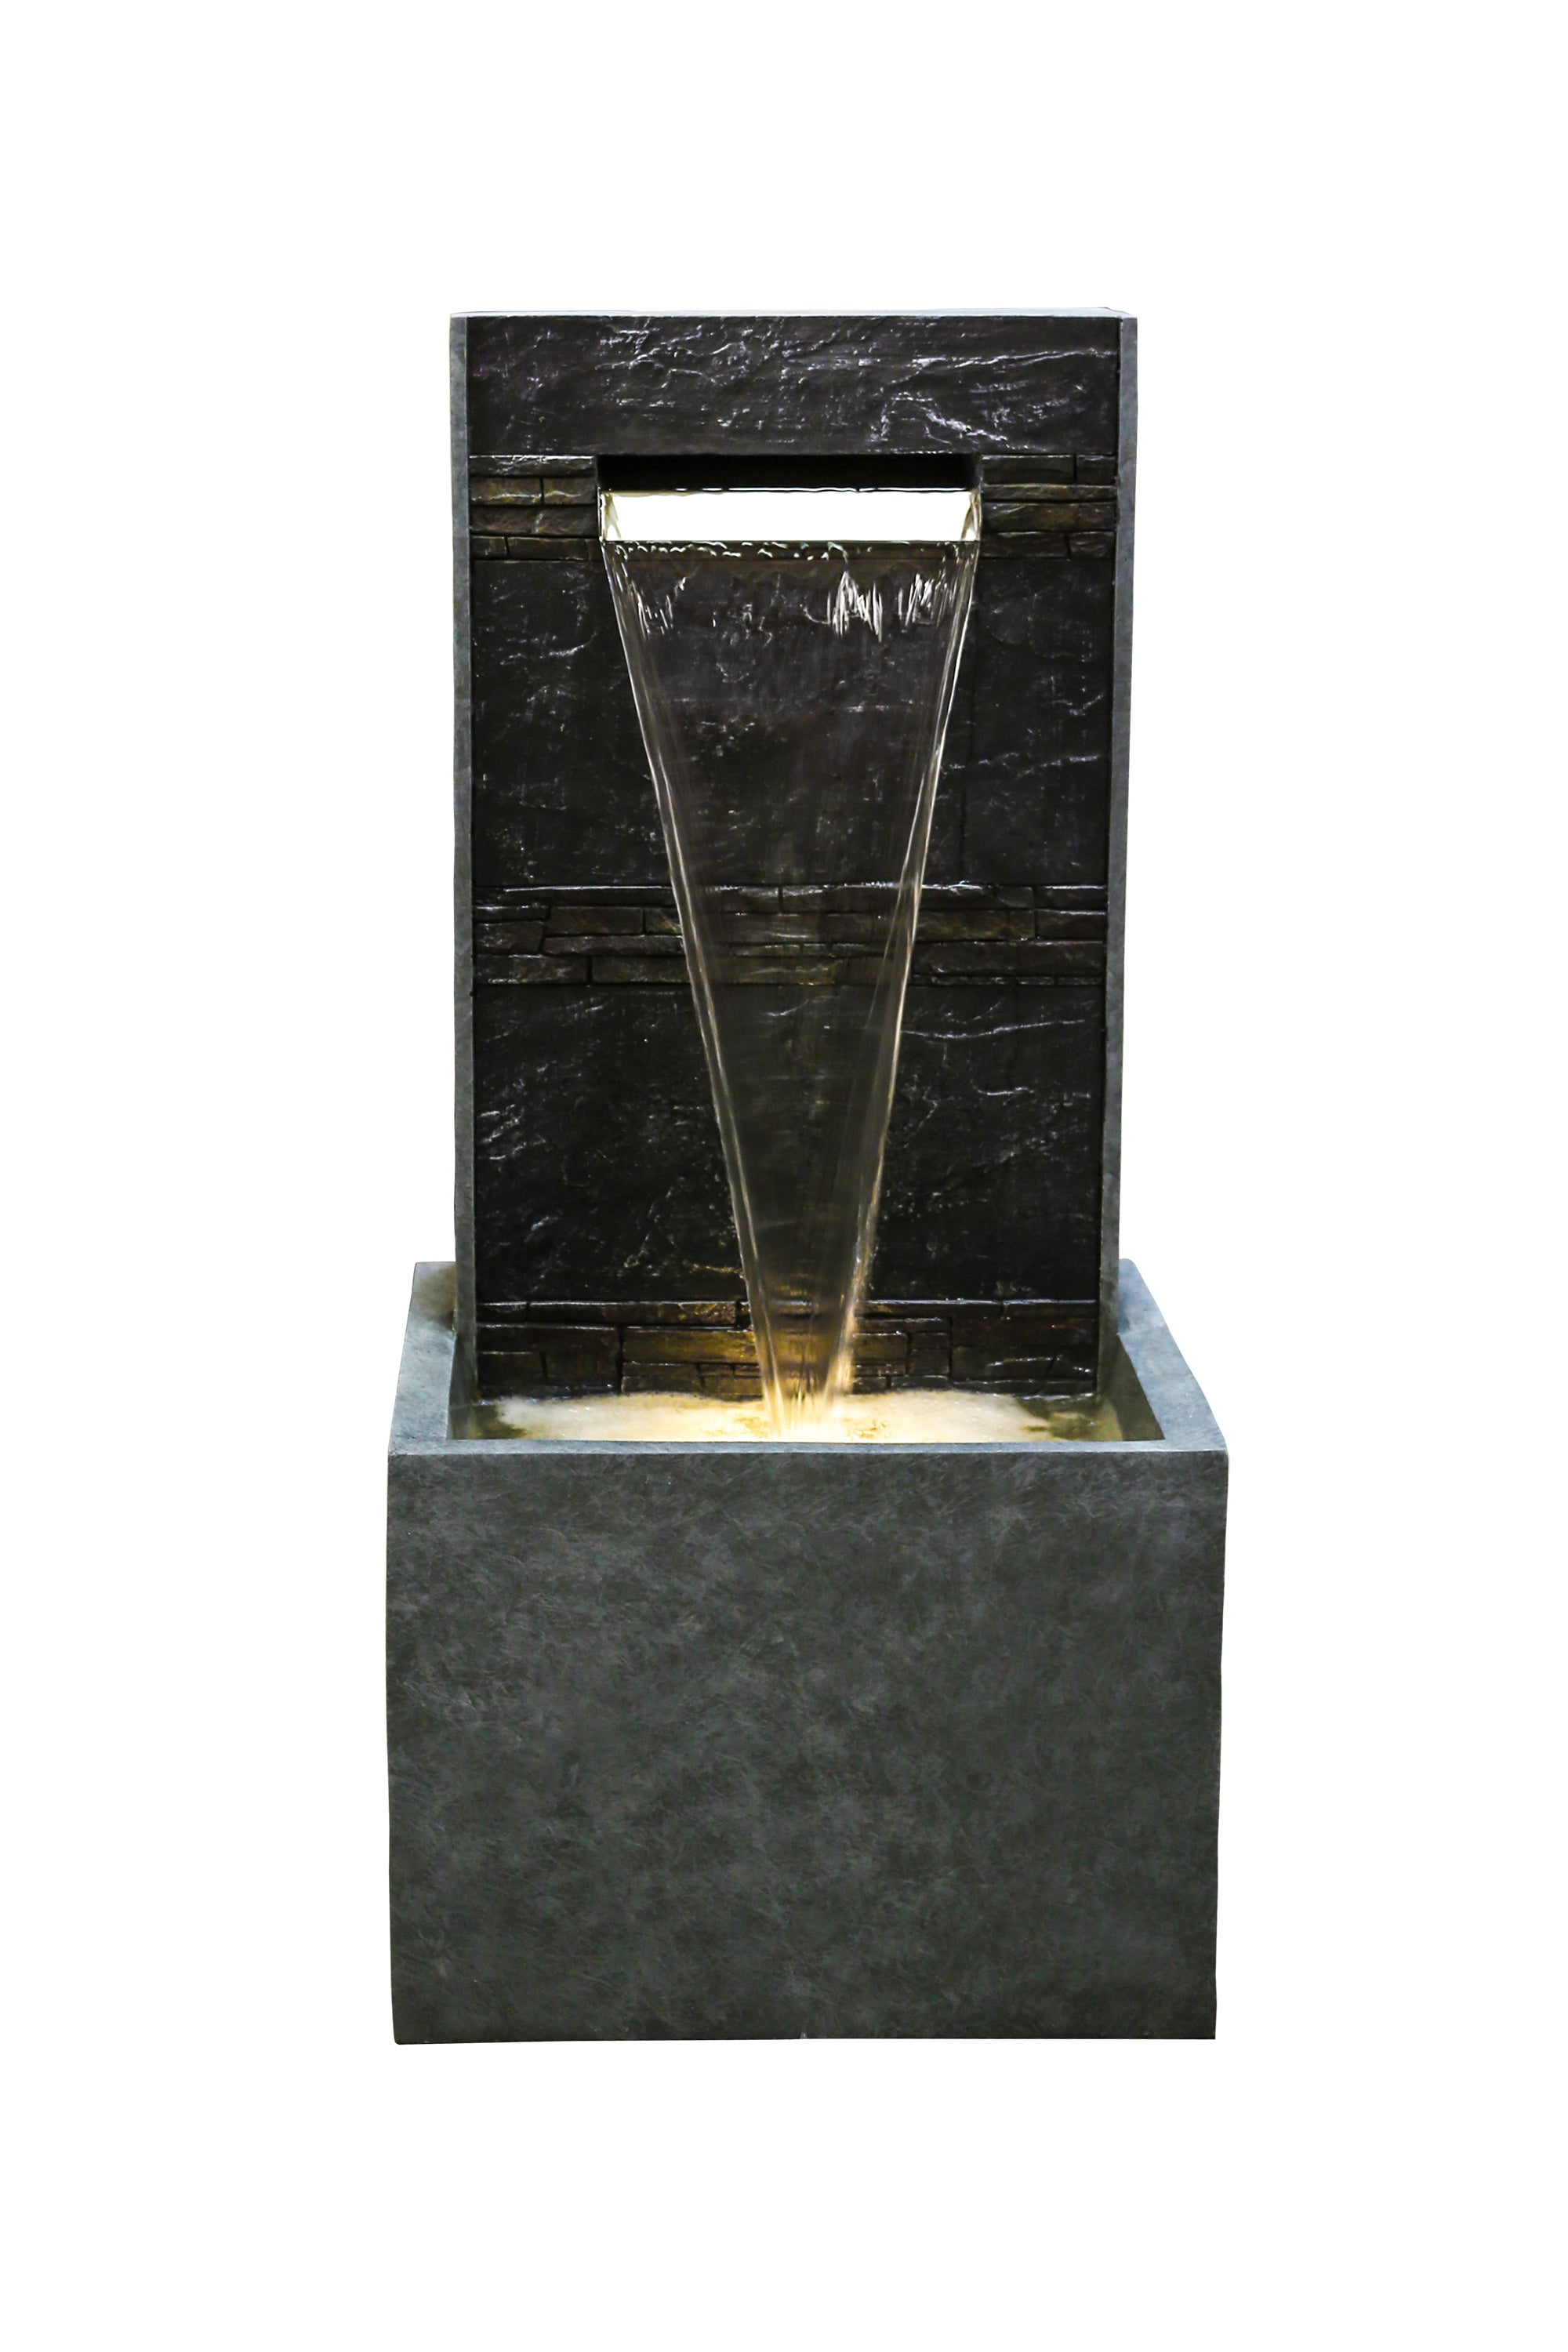 Oslo Fountain (On Order 50% Payable on Order 50% on Delivery - Total Price Eur 472)